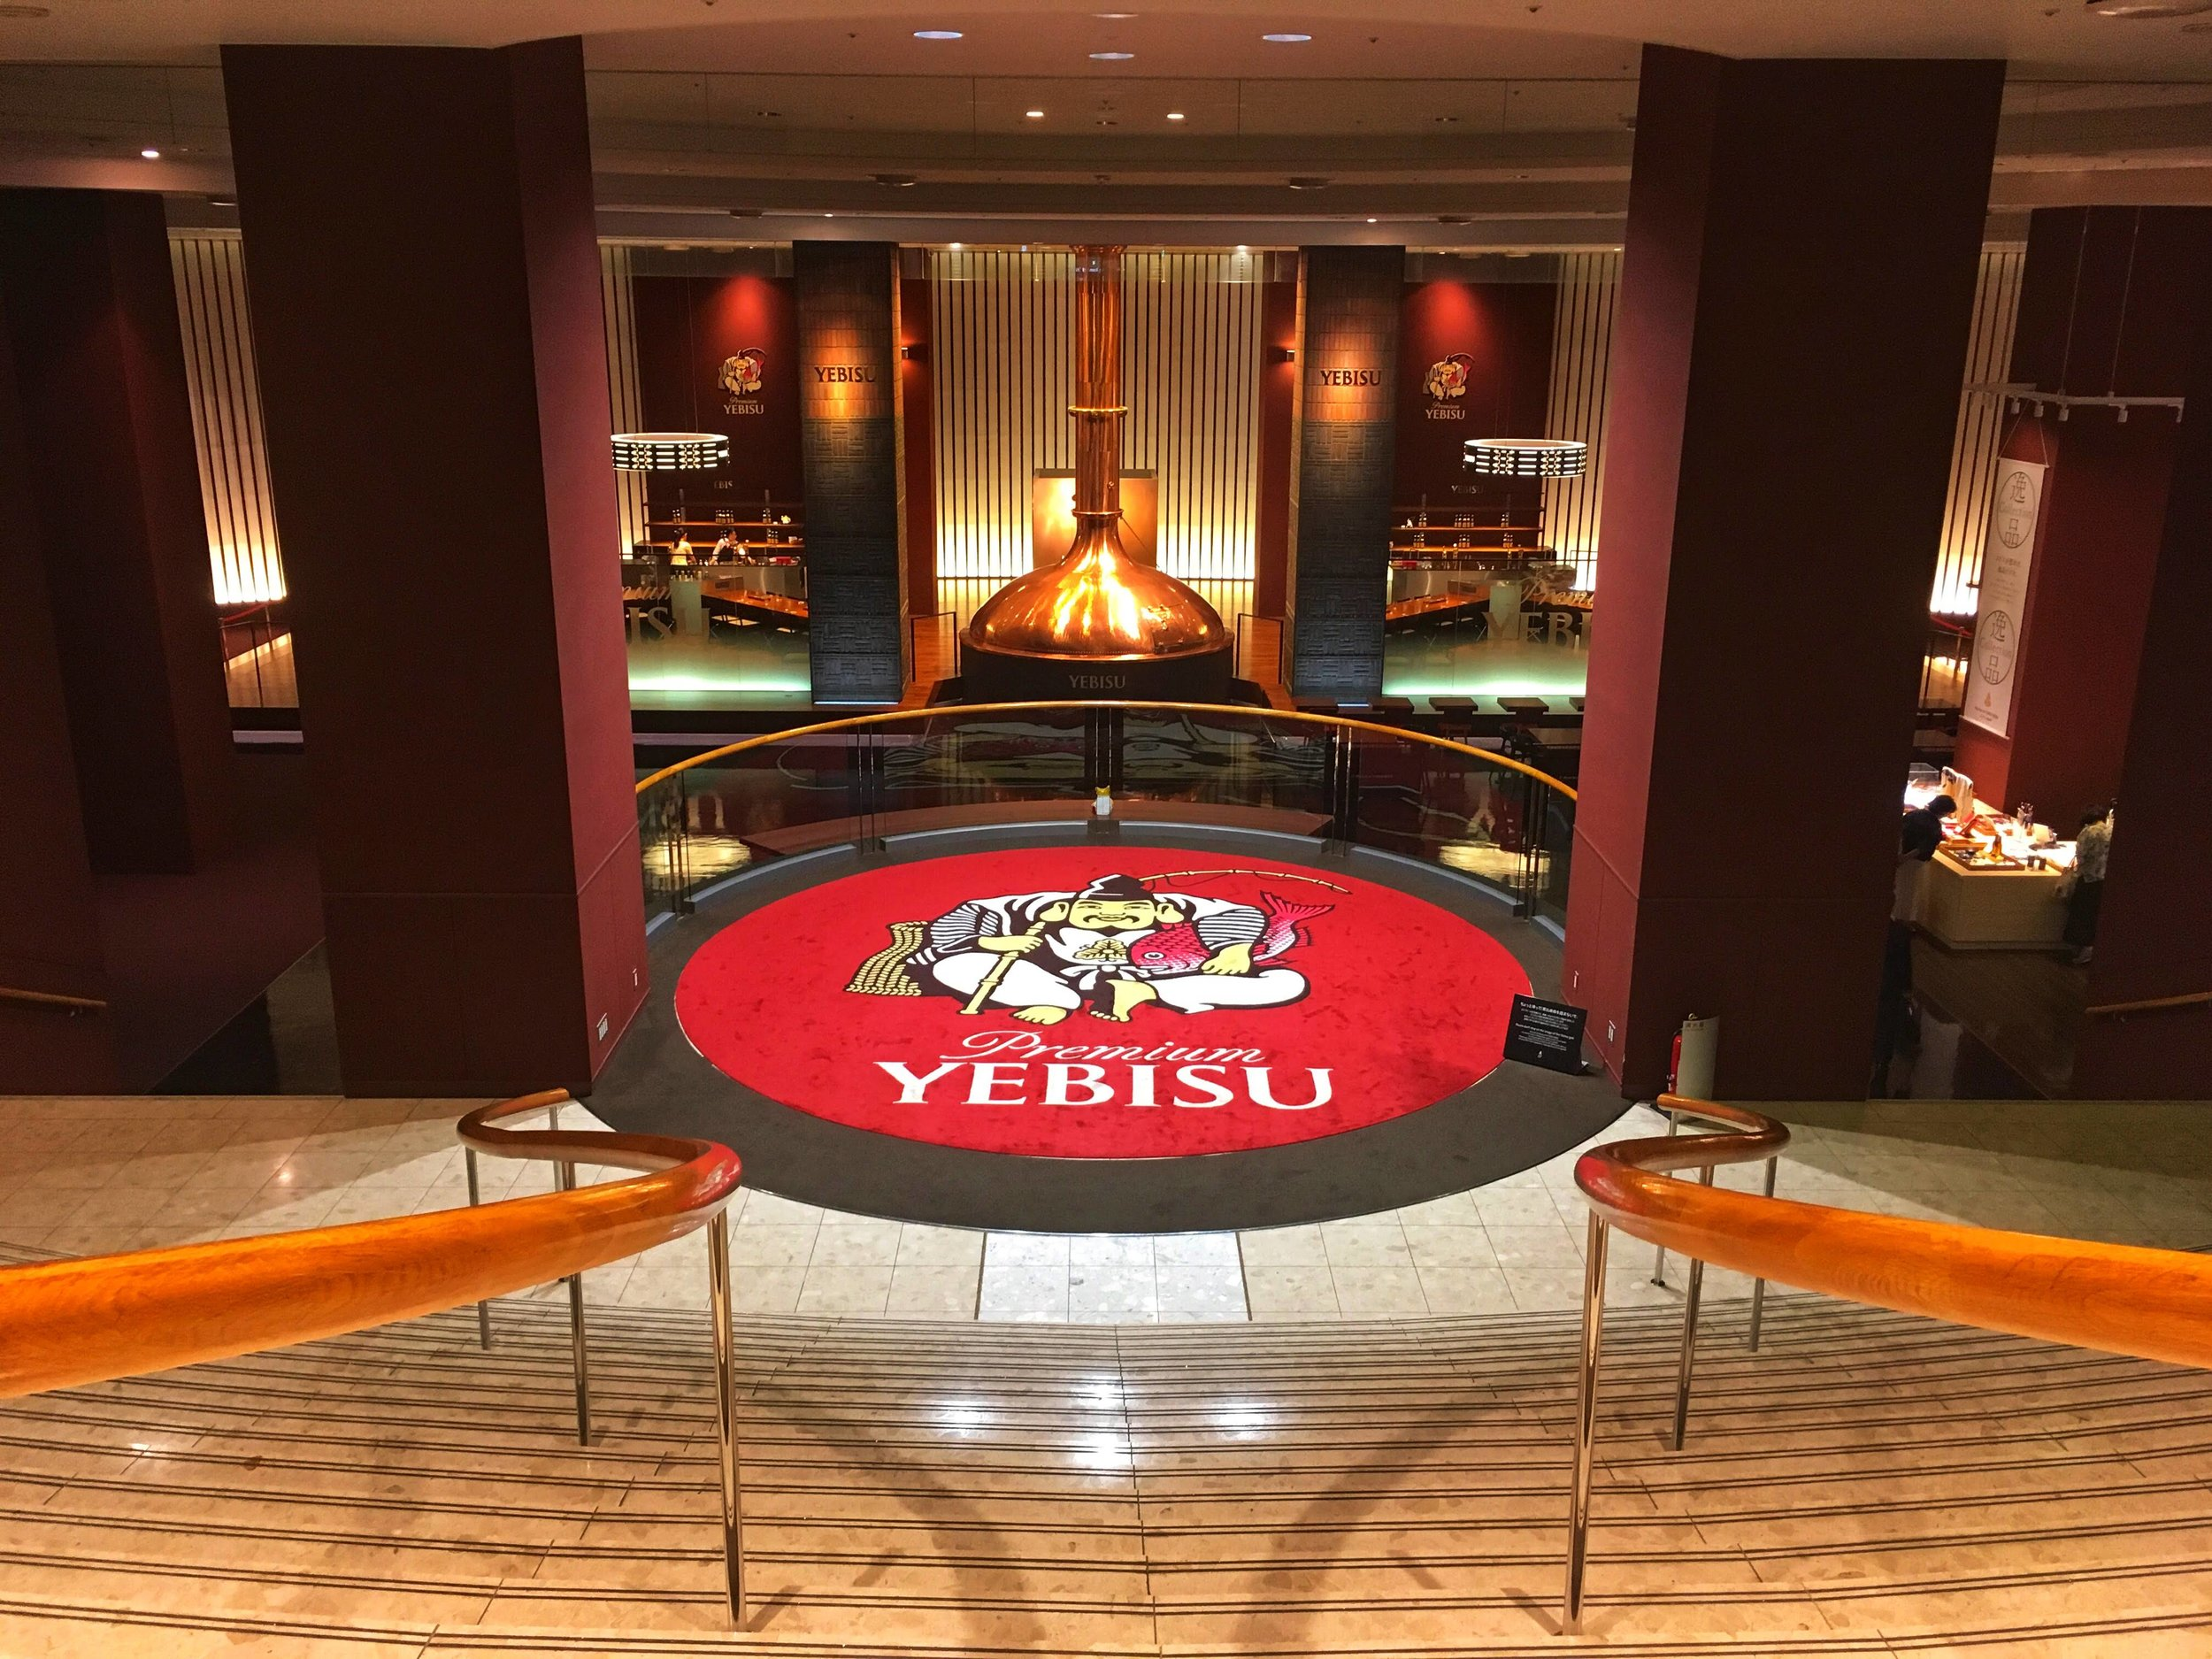 Museum of Yebisu Beer, Tokyo, Japan - beer museum and tasting room